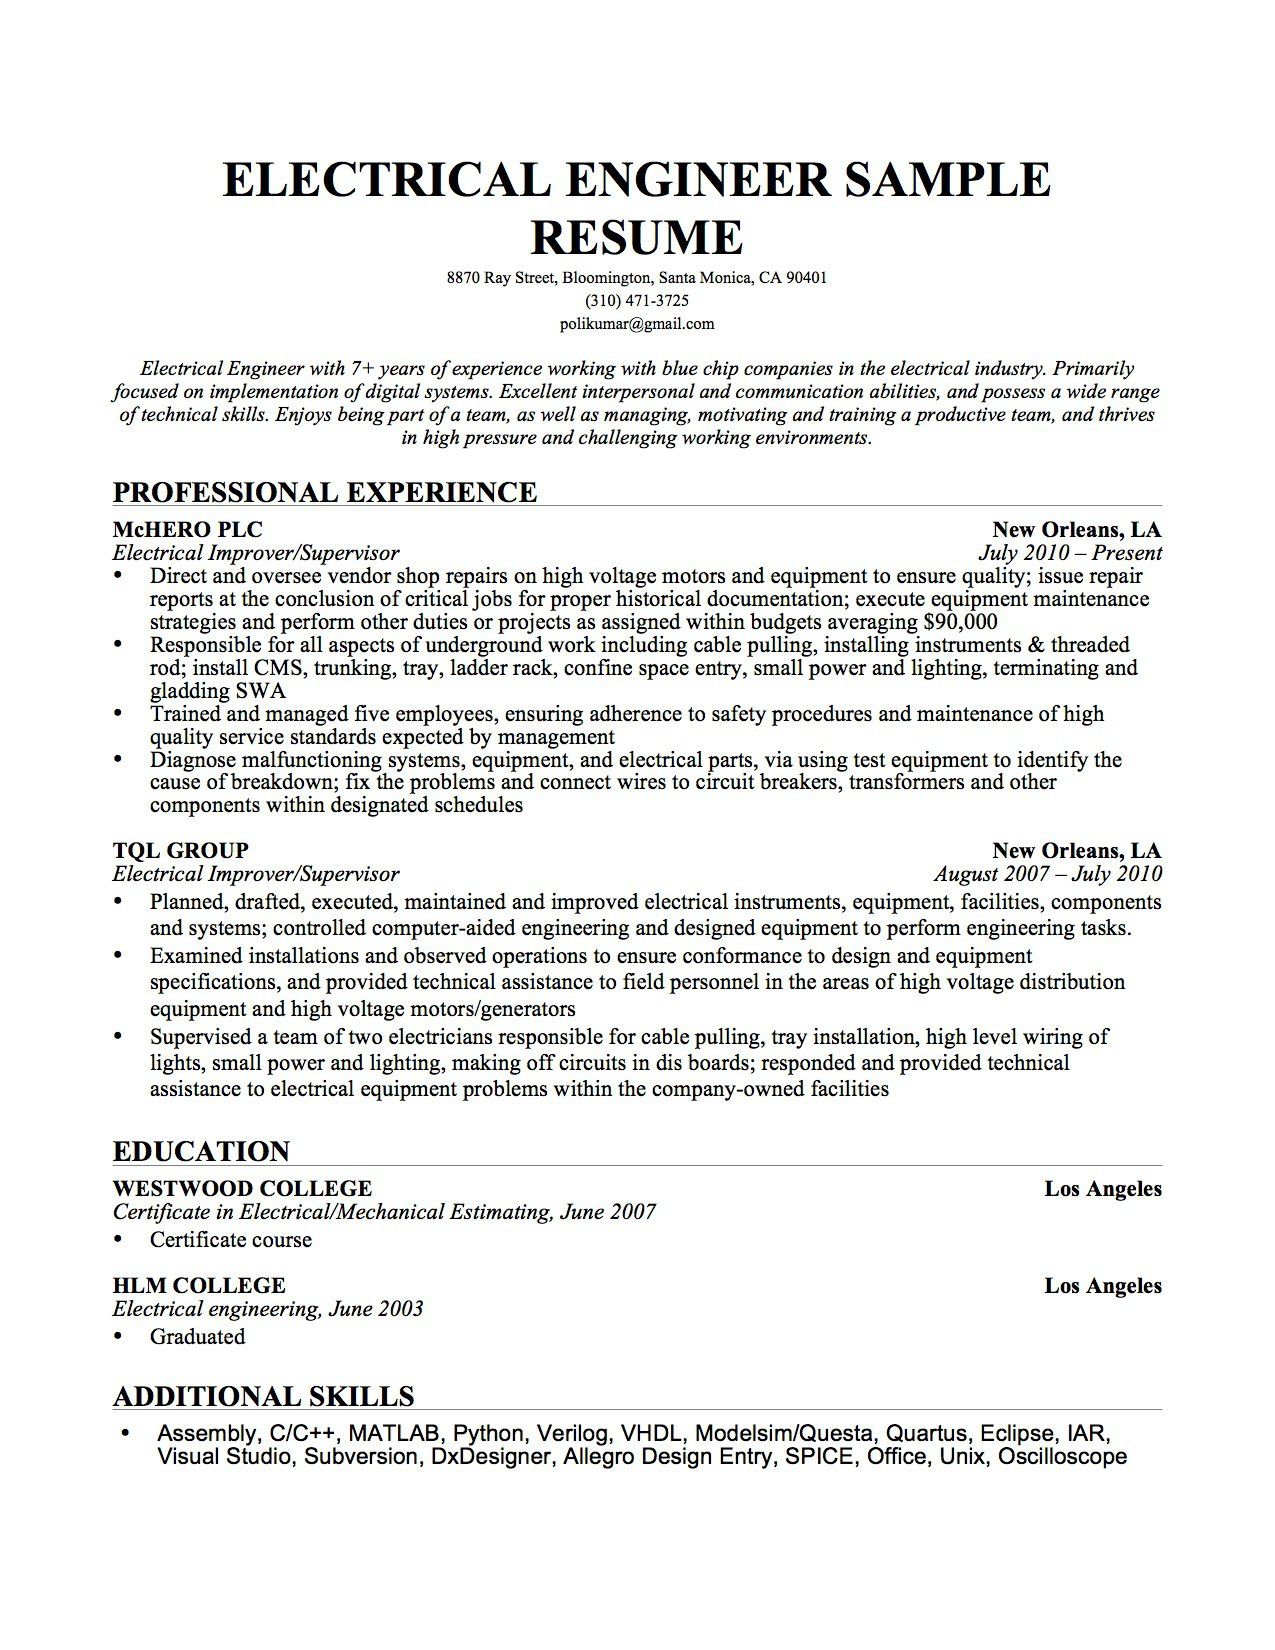 engineering resume cover letter samplesfirst restore instance with